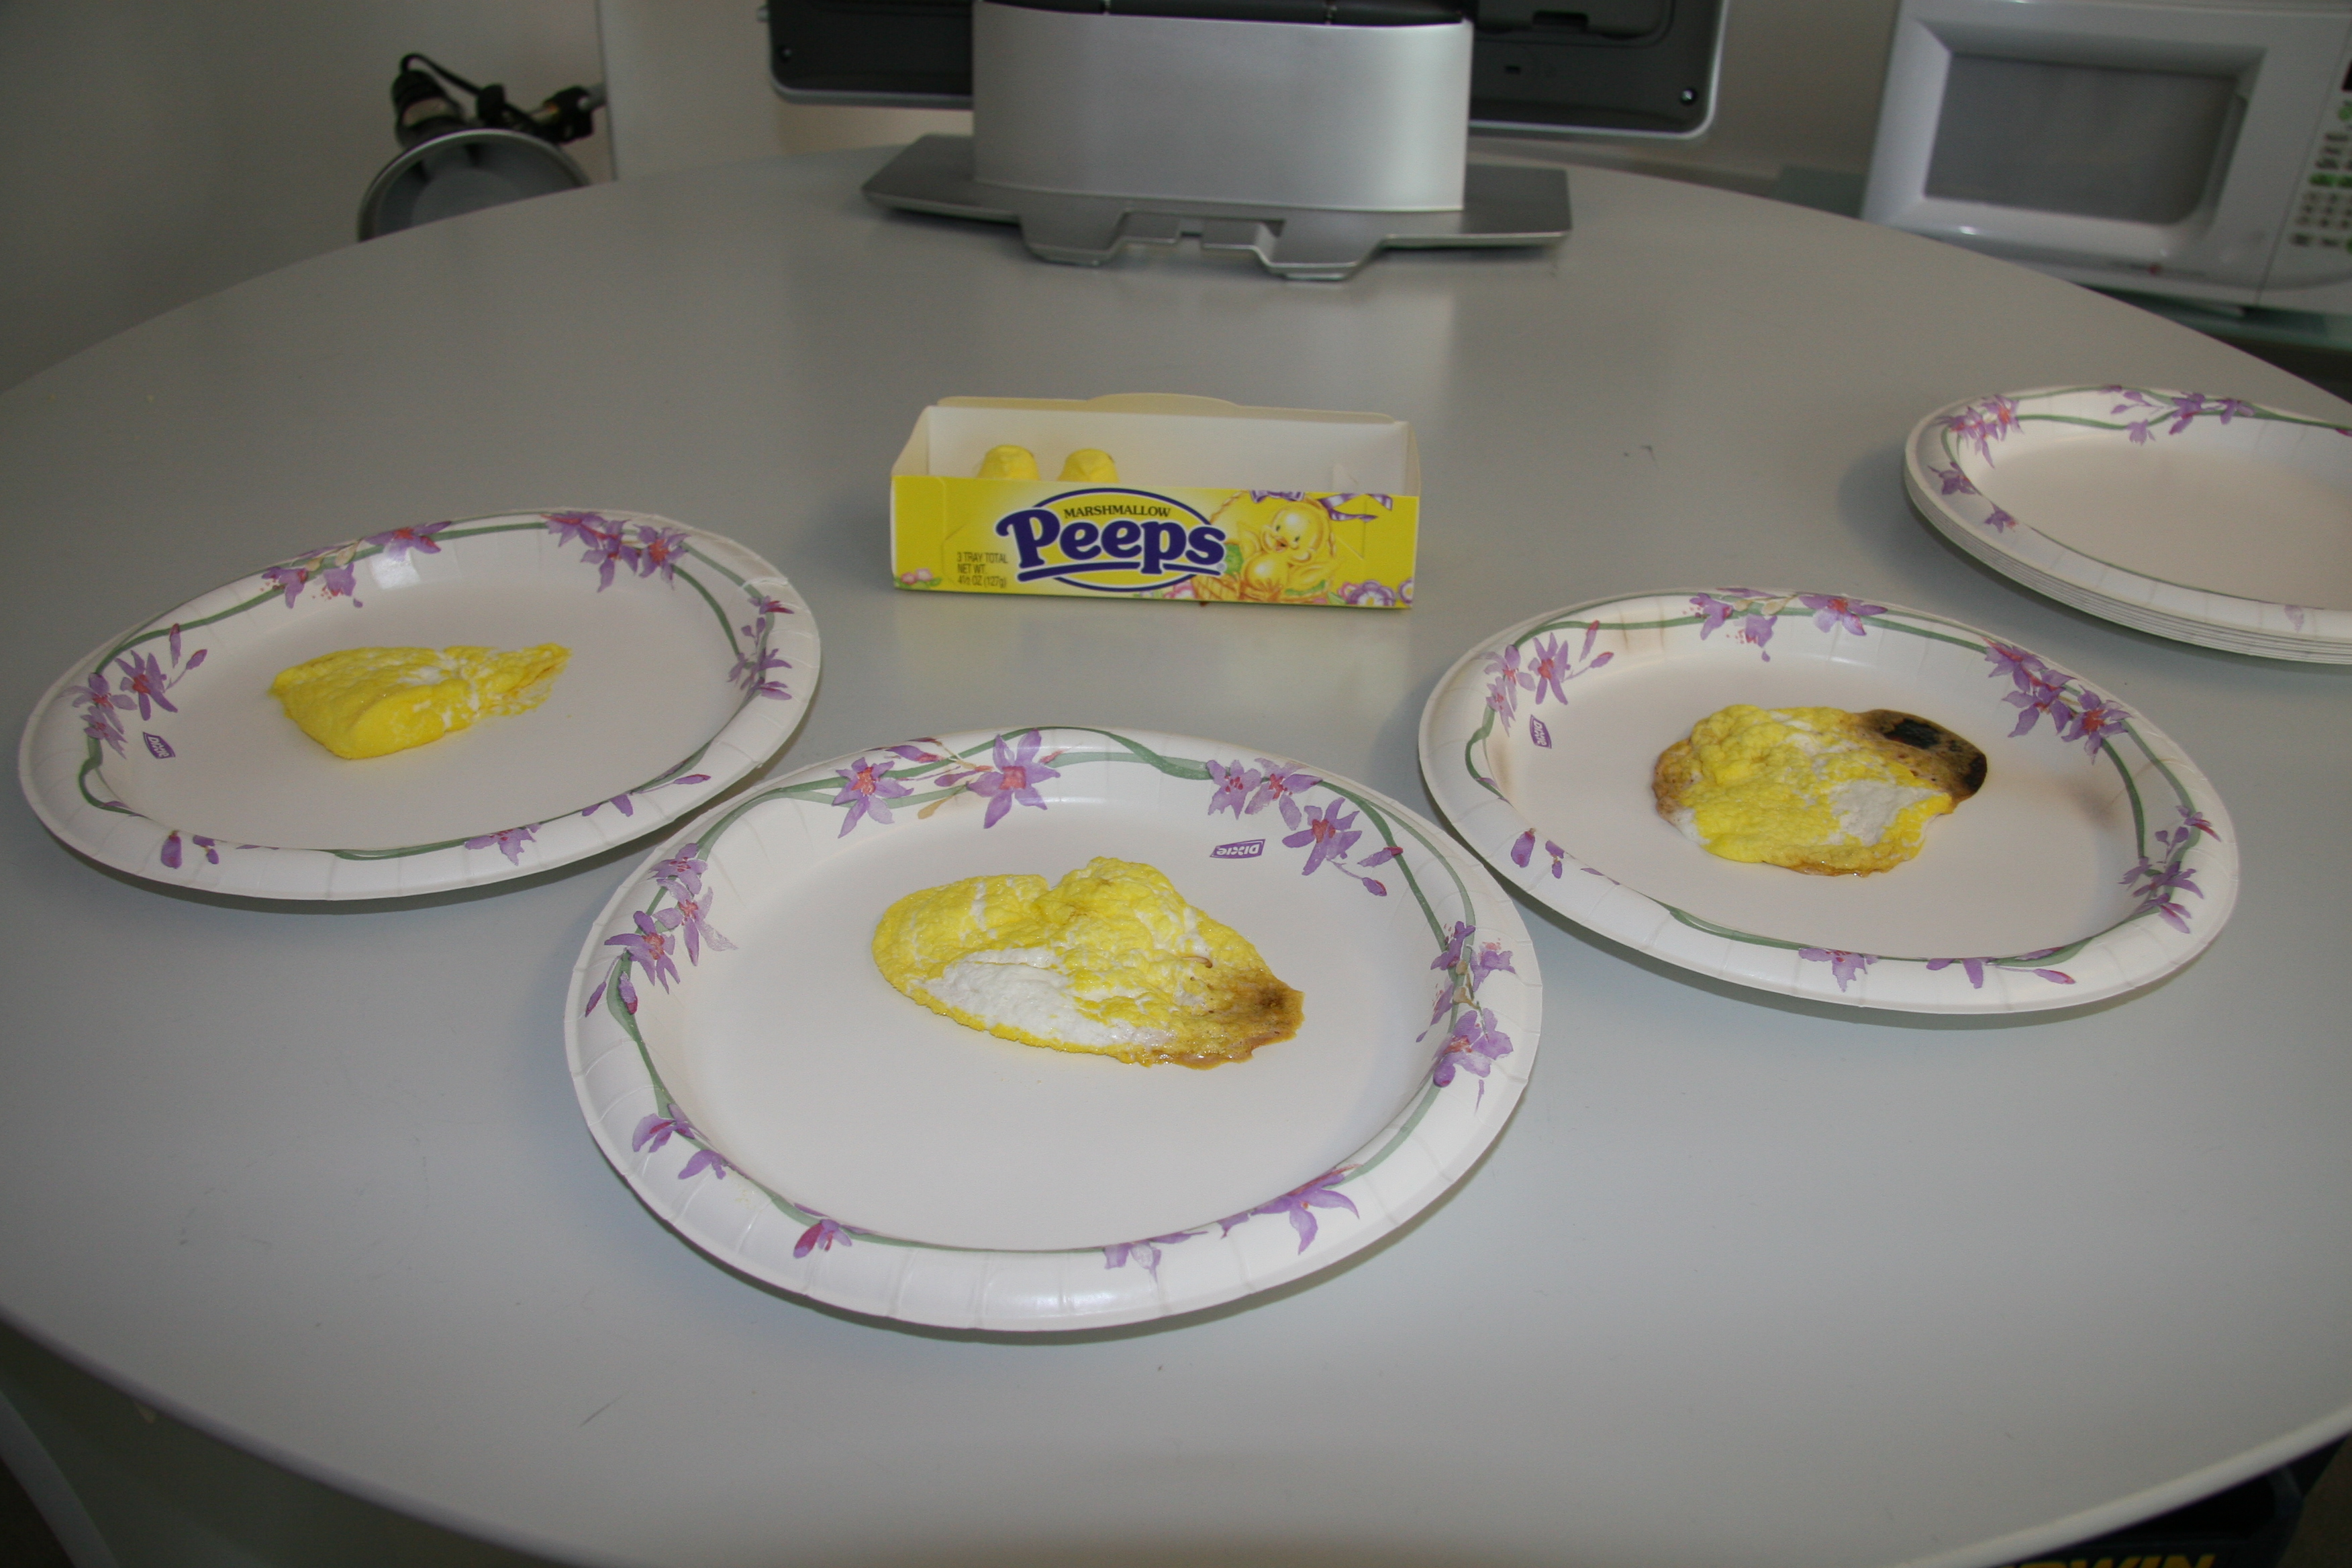 TV Dinners: South Park - Microwaved Peeps